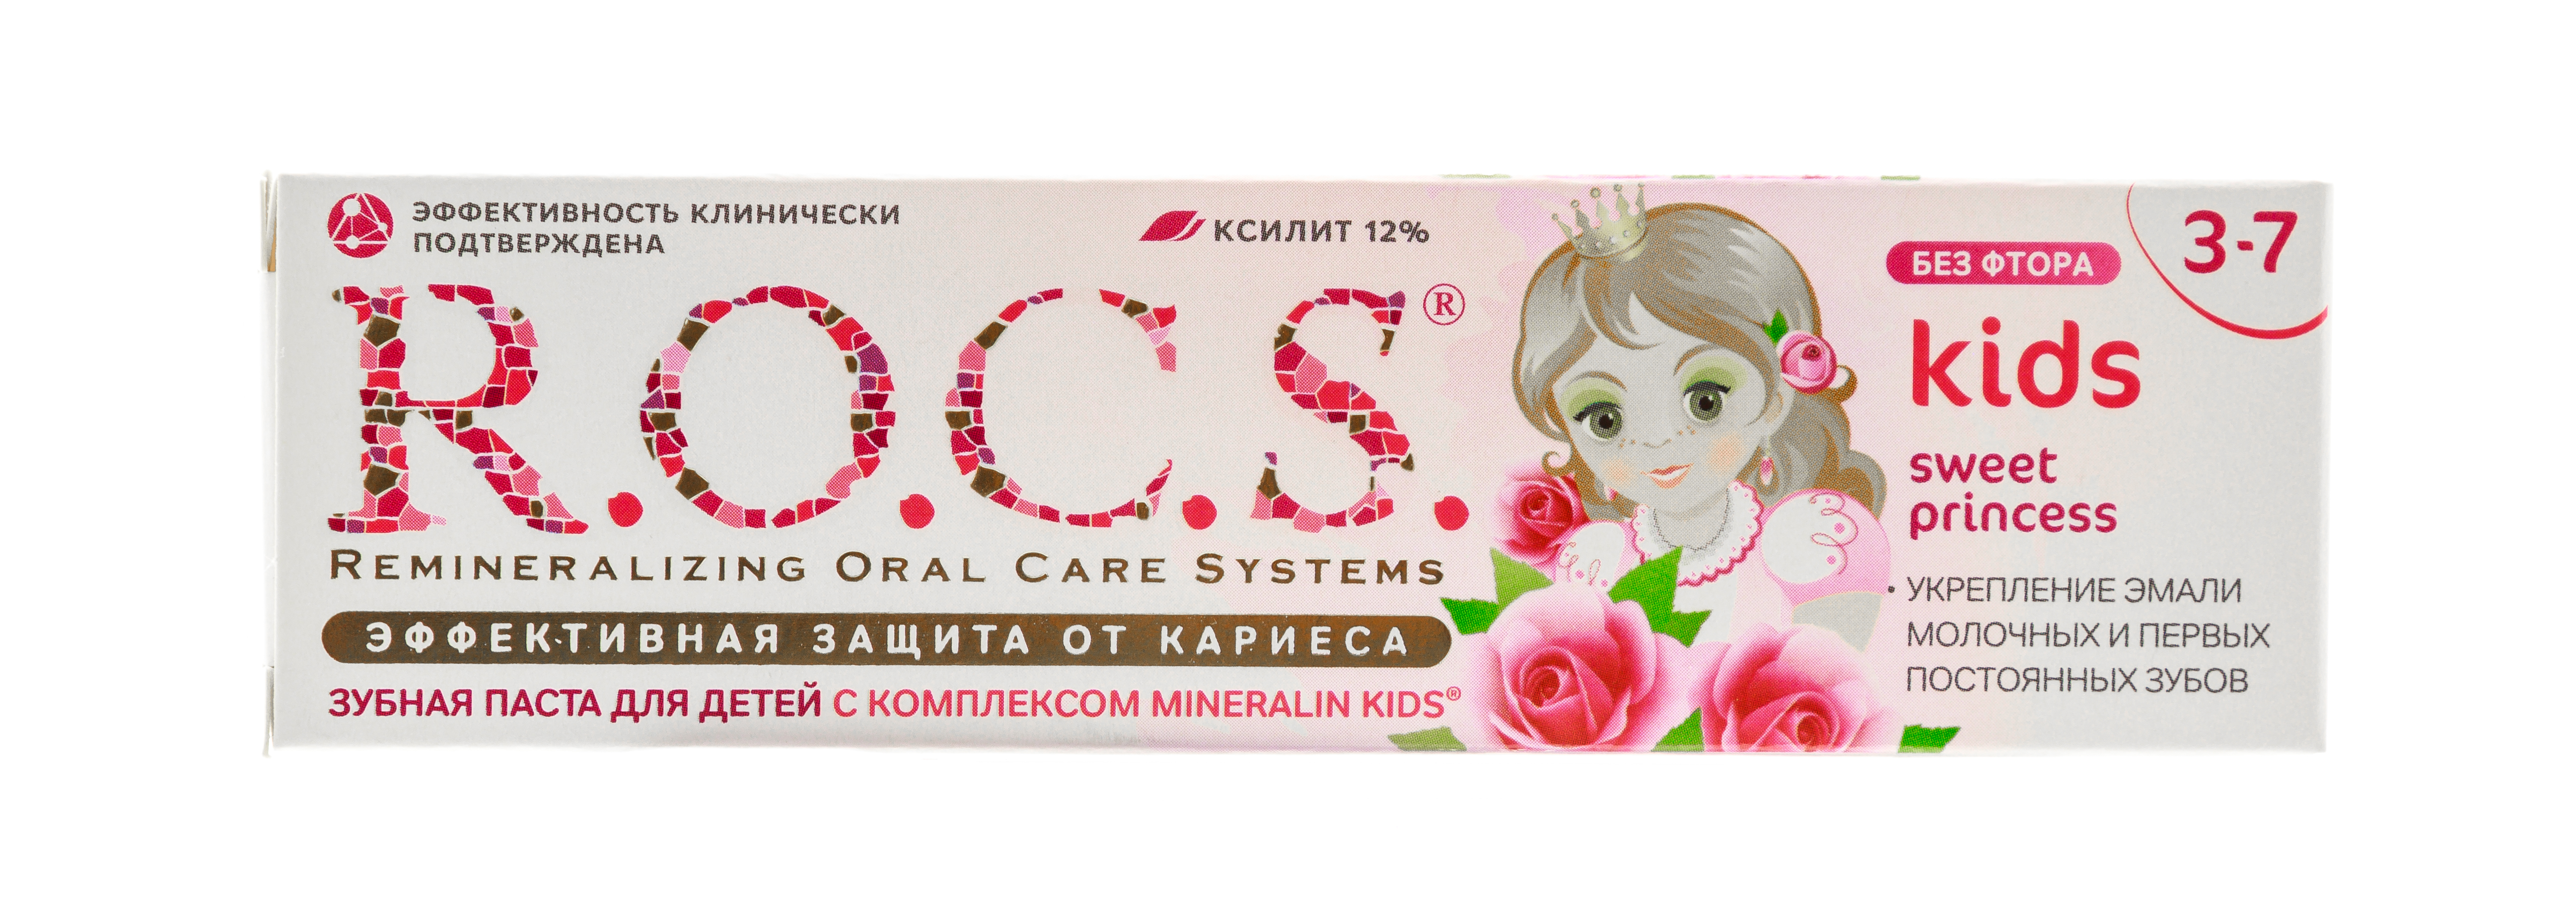 Рокс Зубная паста Kids Sweet Princess с ароматом Розы, 45 г (R.O.C.S, Kids 3-7 years) фото 4